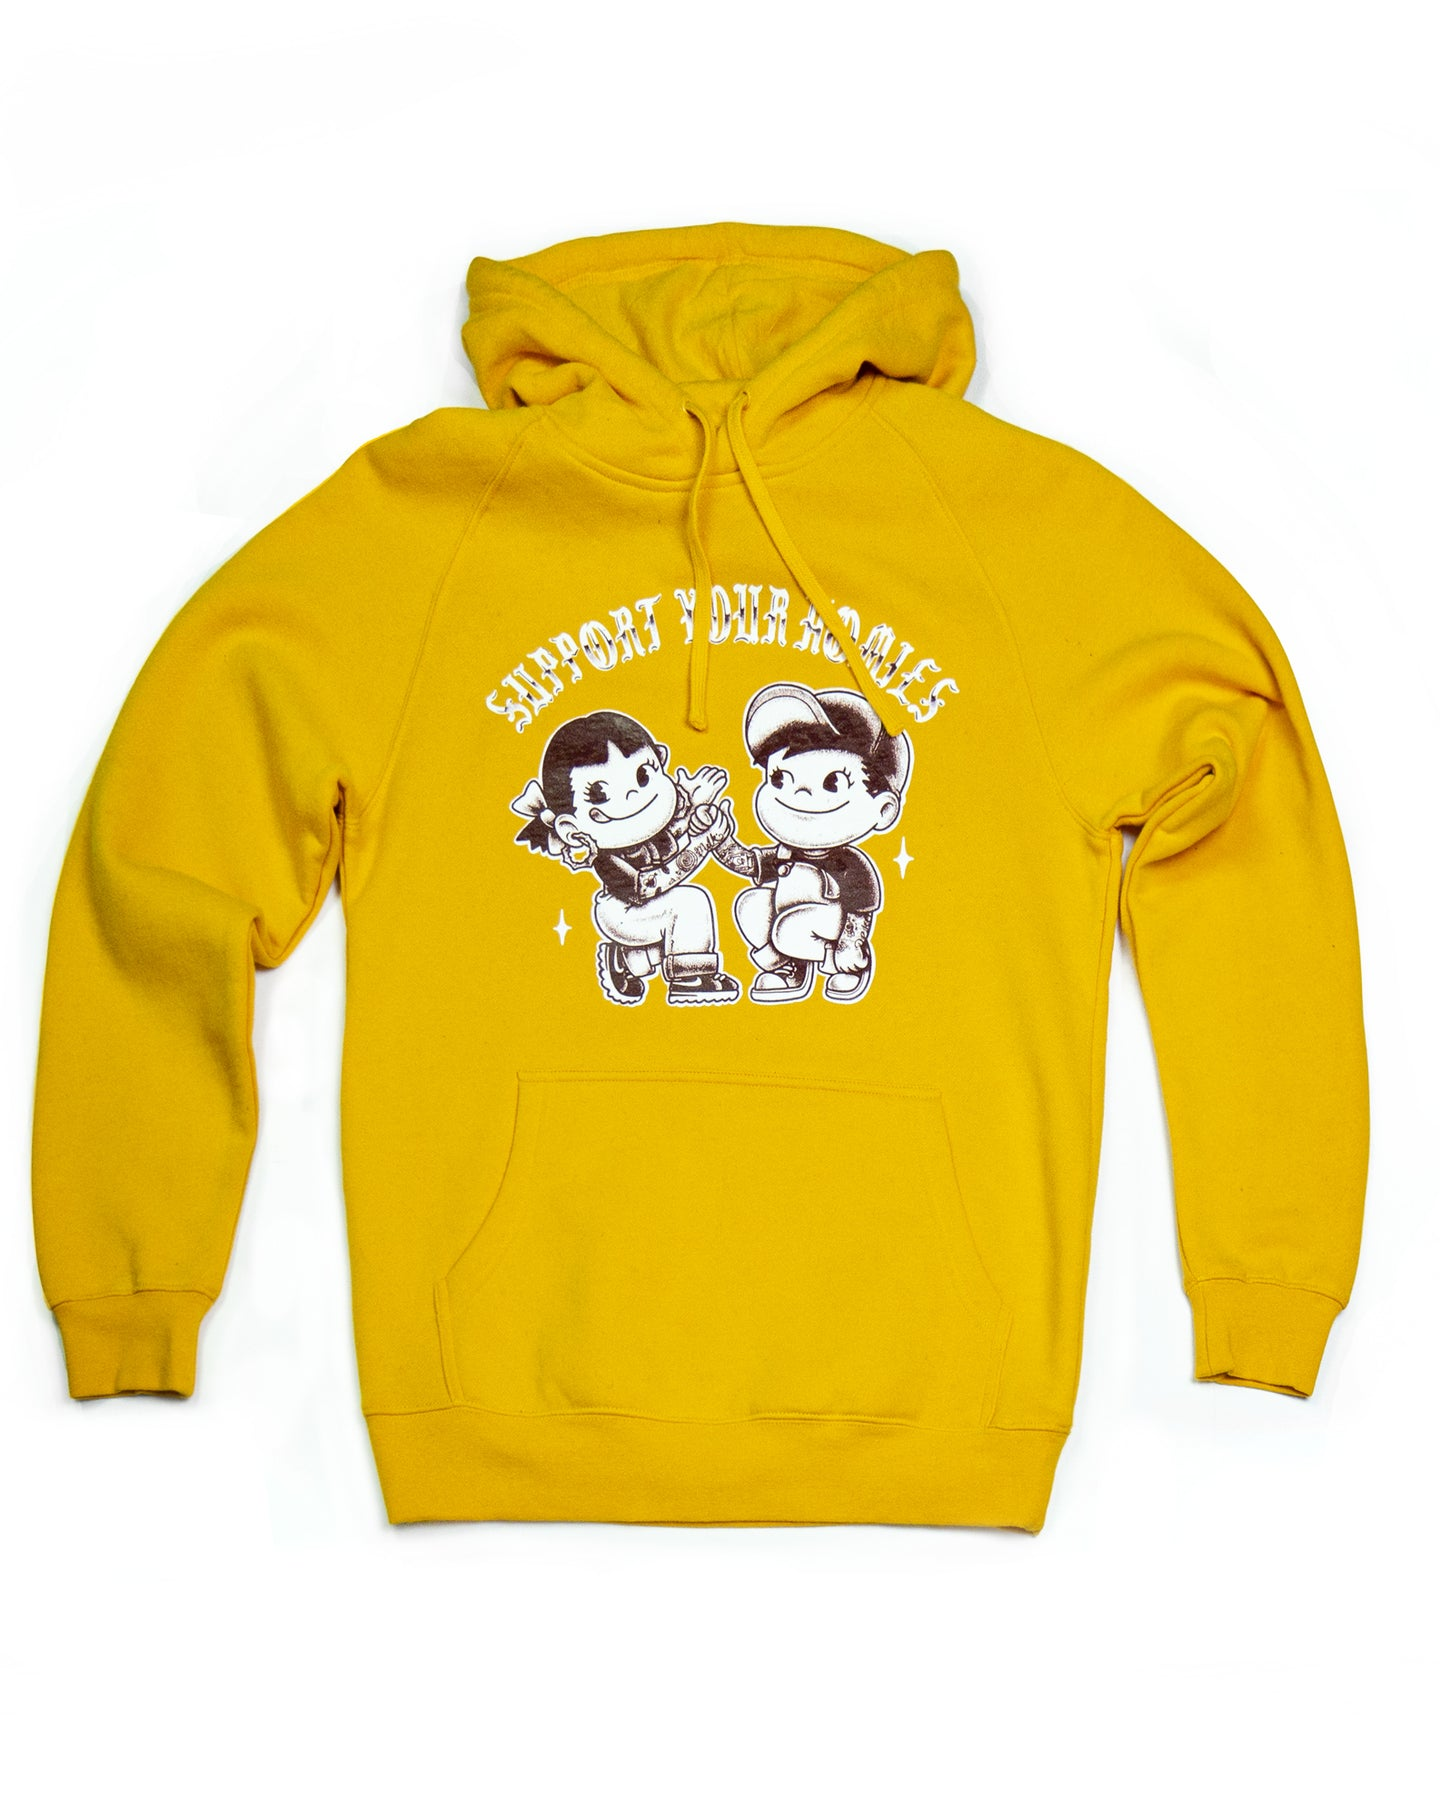 Support Your Homies Pullover, Gold